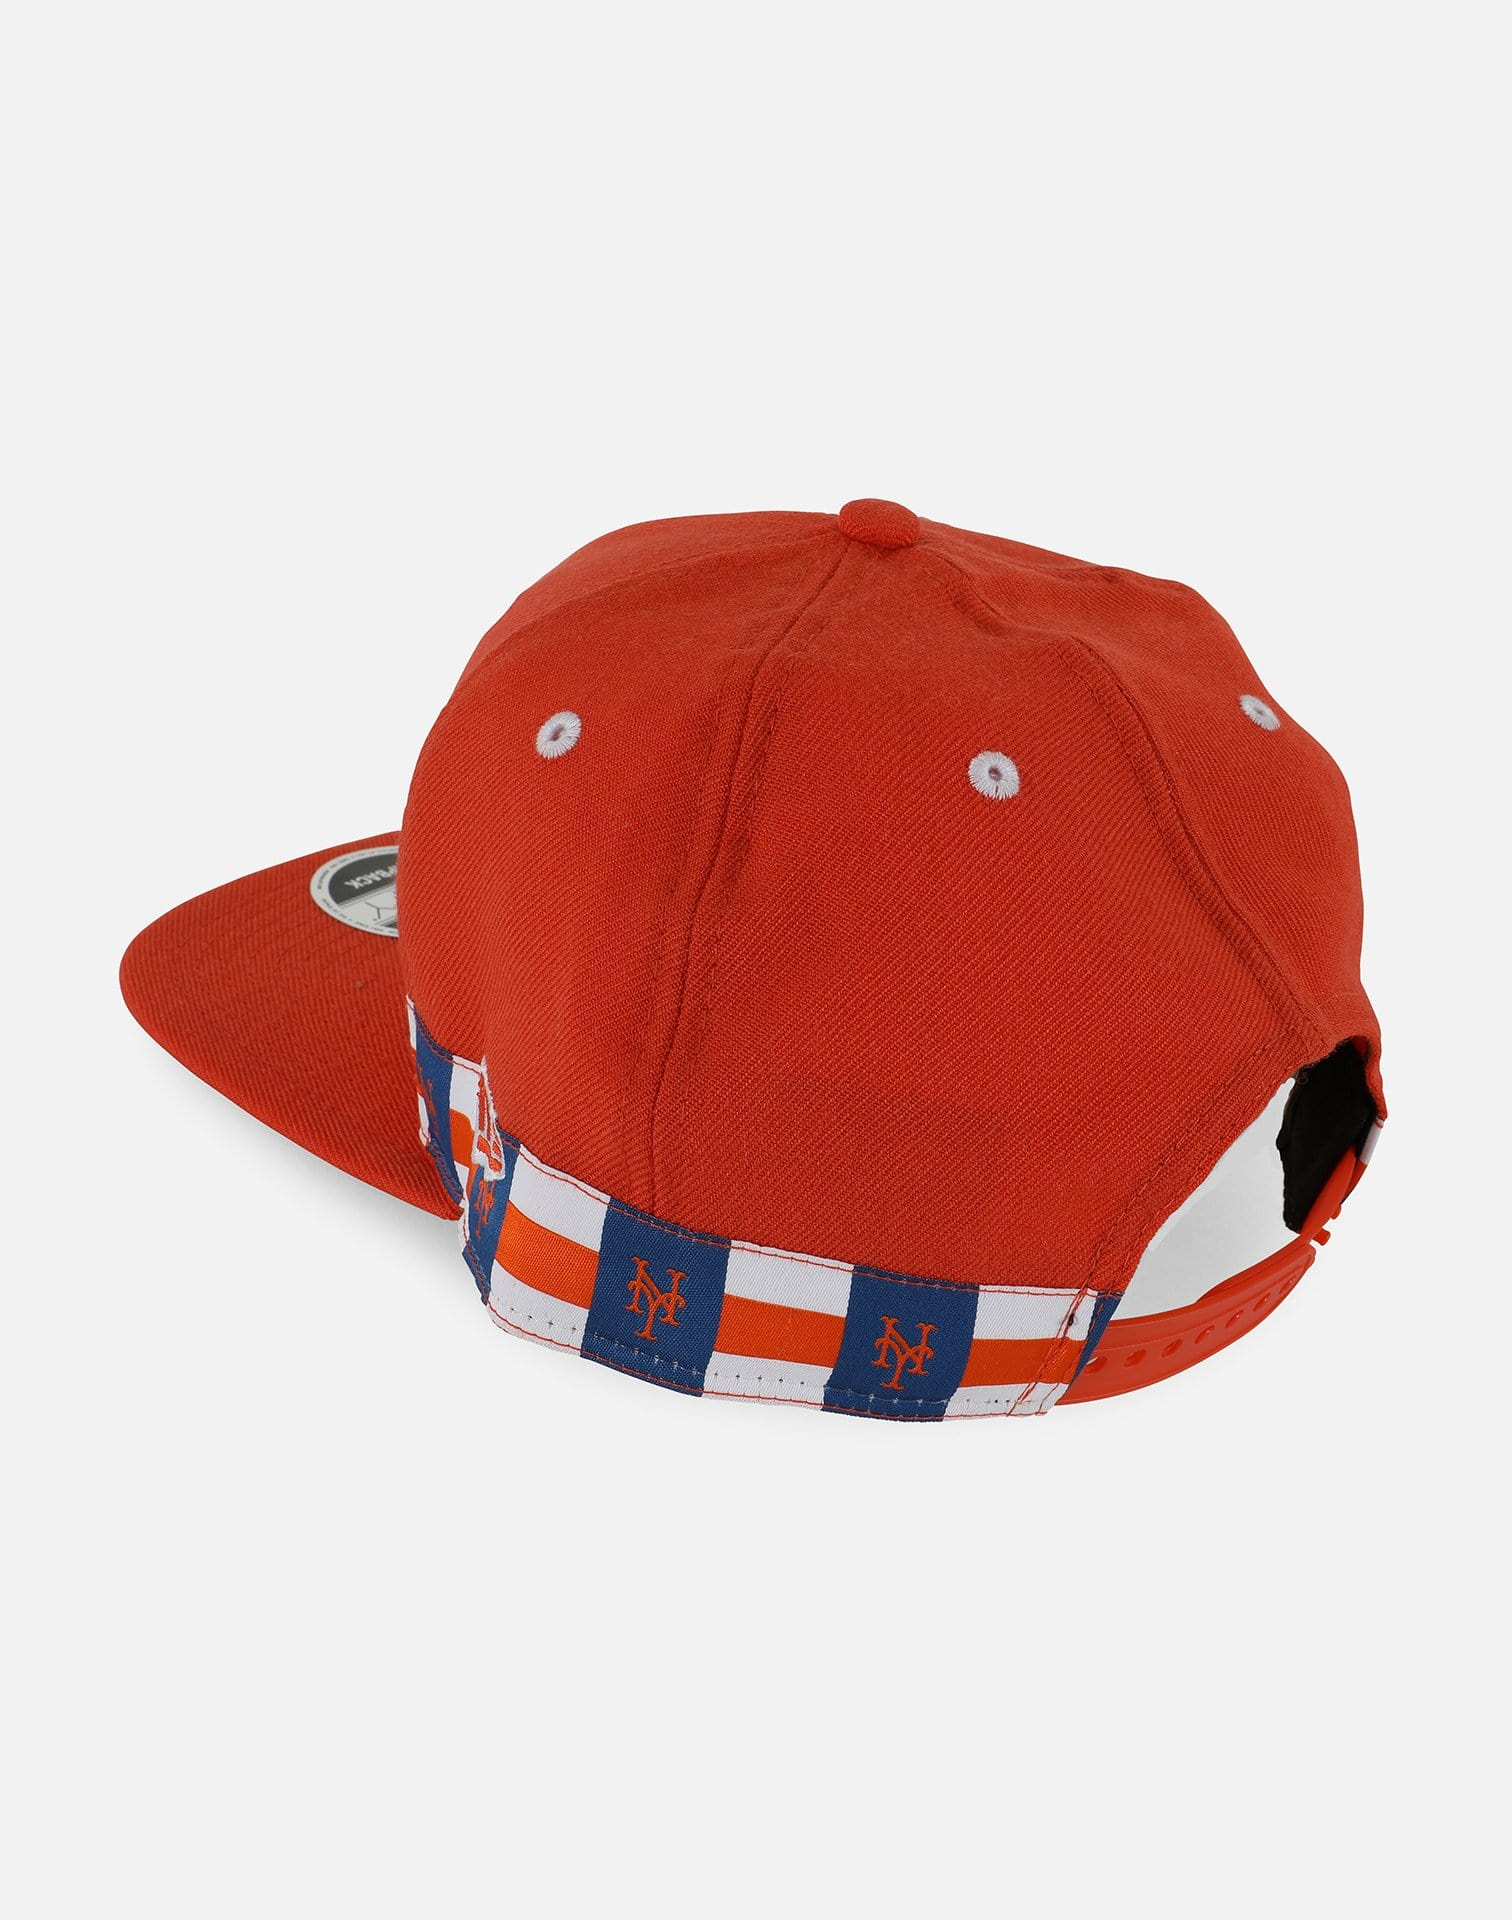 New Era Exclusive Customs MLB New York Mets 018 Snapback Hat